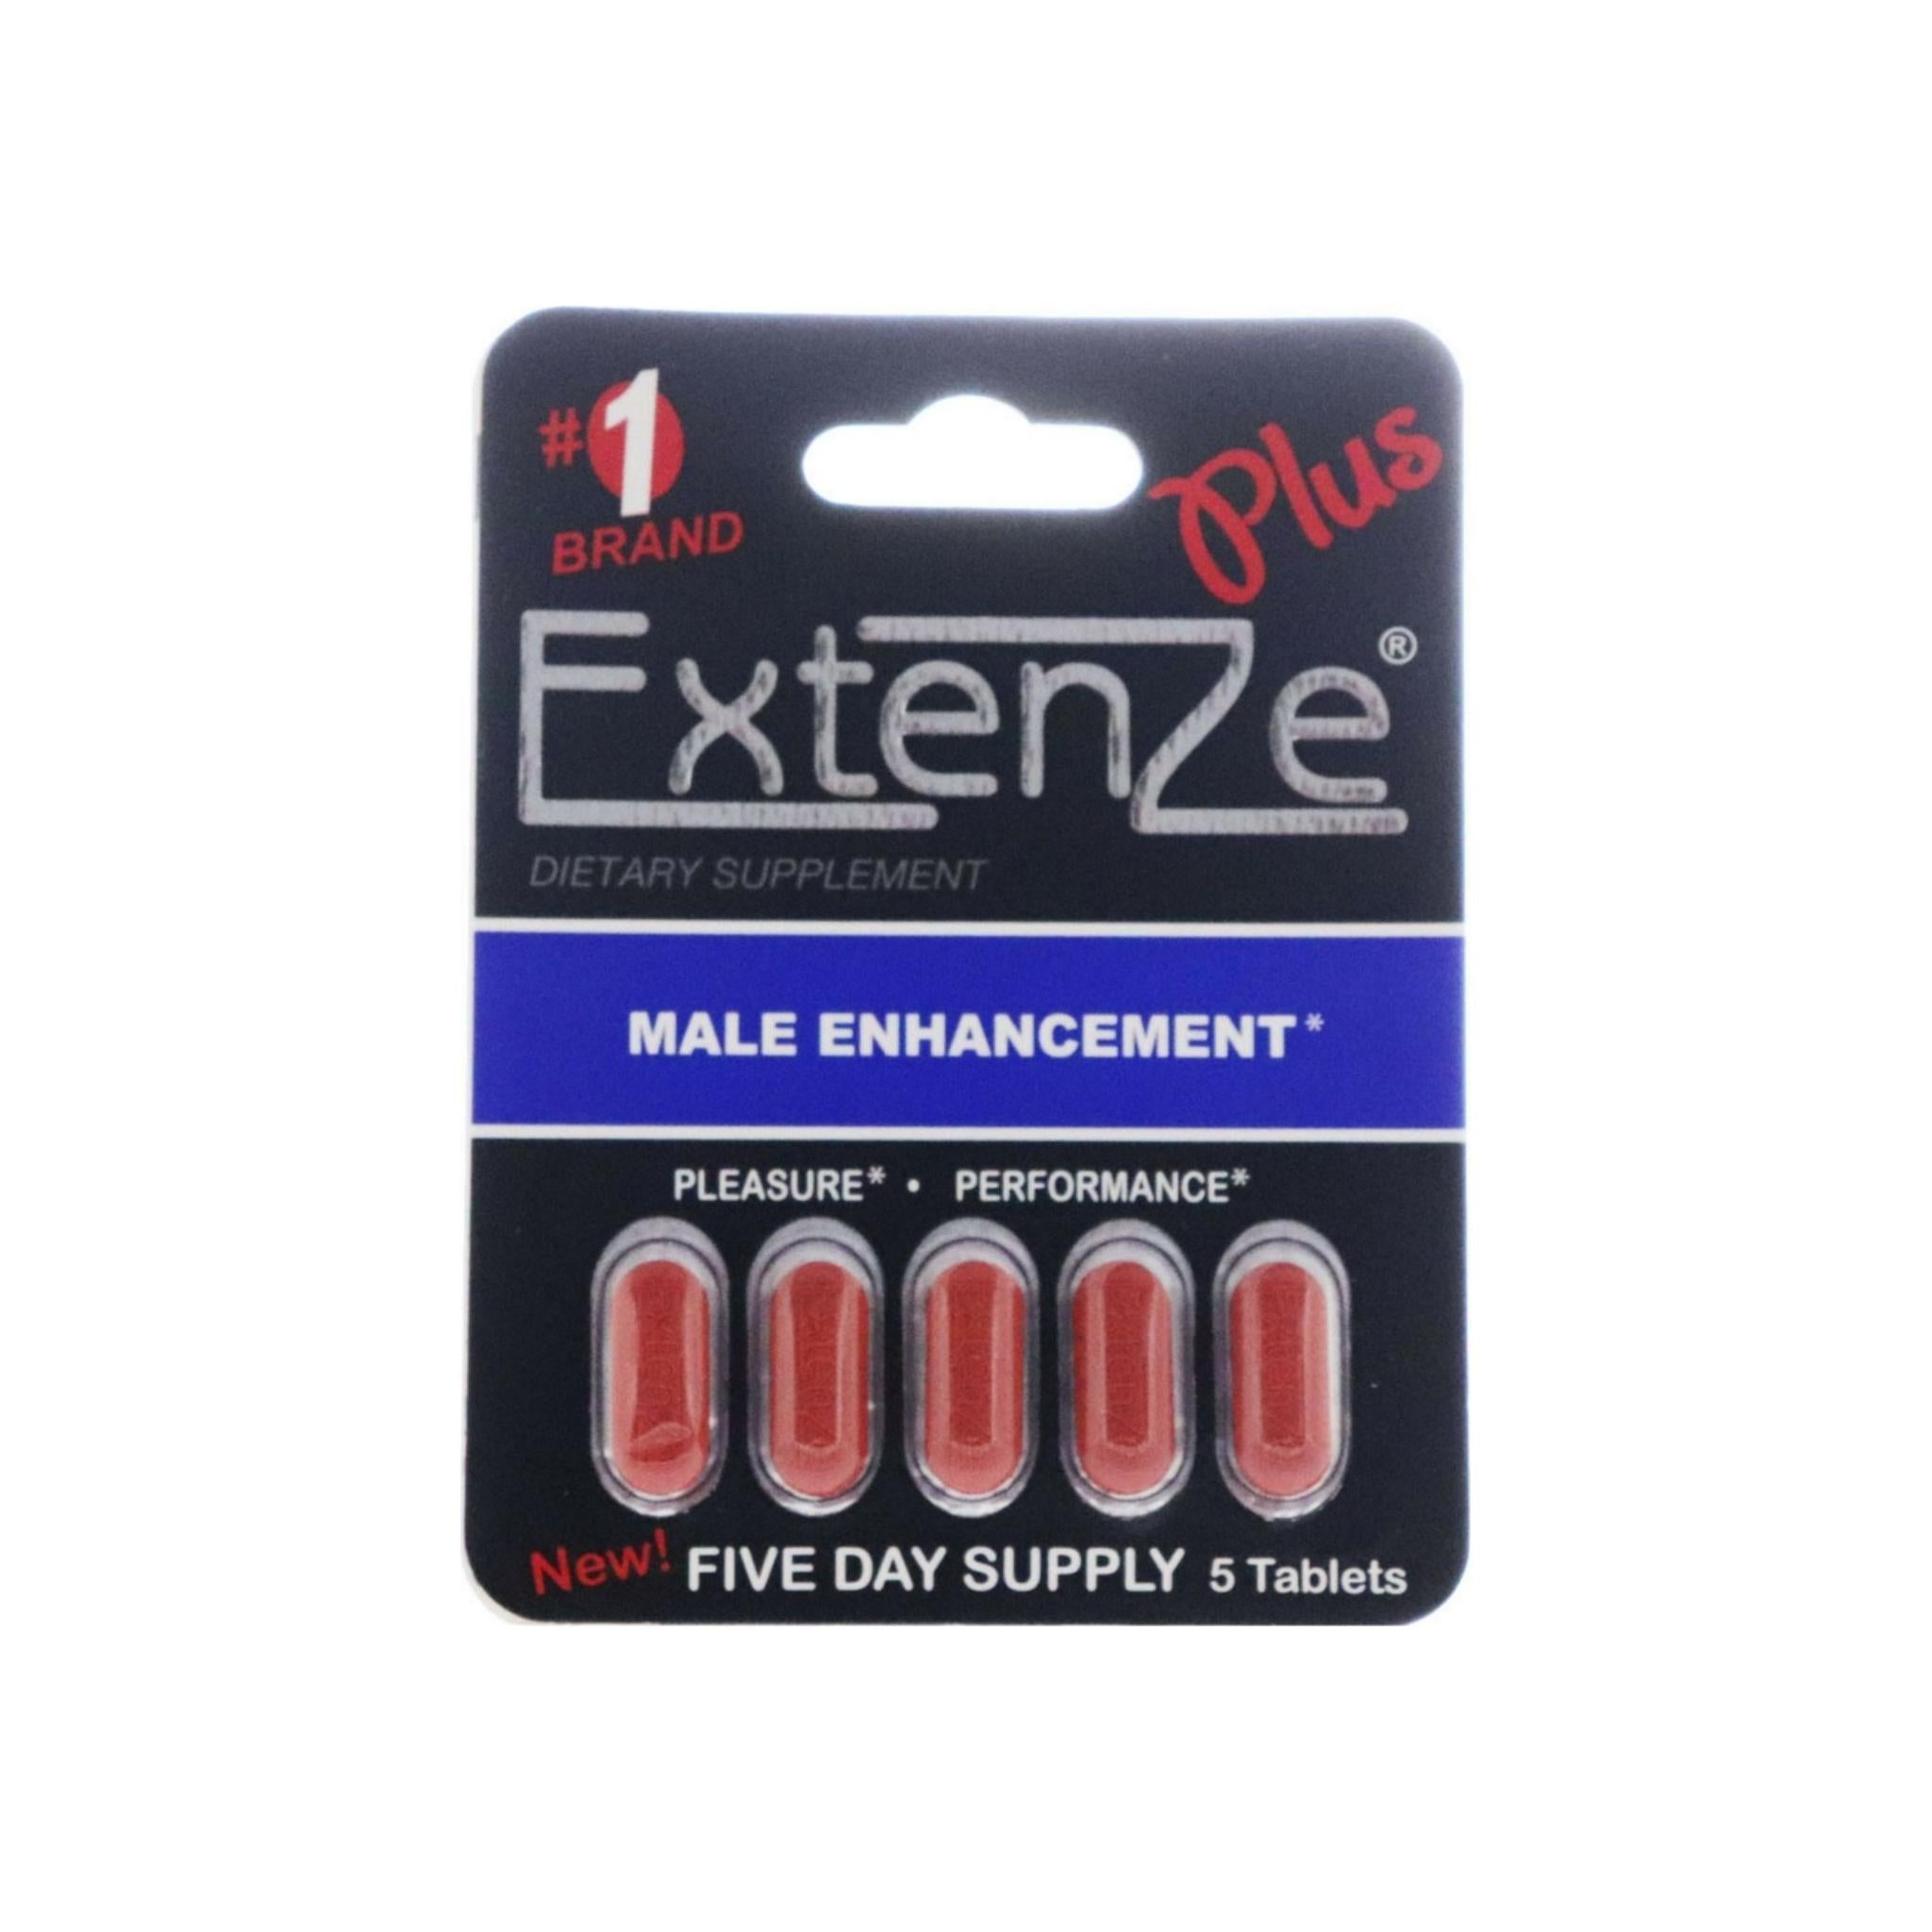 buy Male Enhancement Pills Extenze price brand new